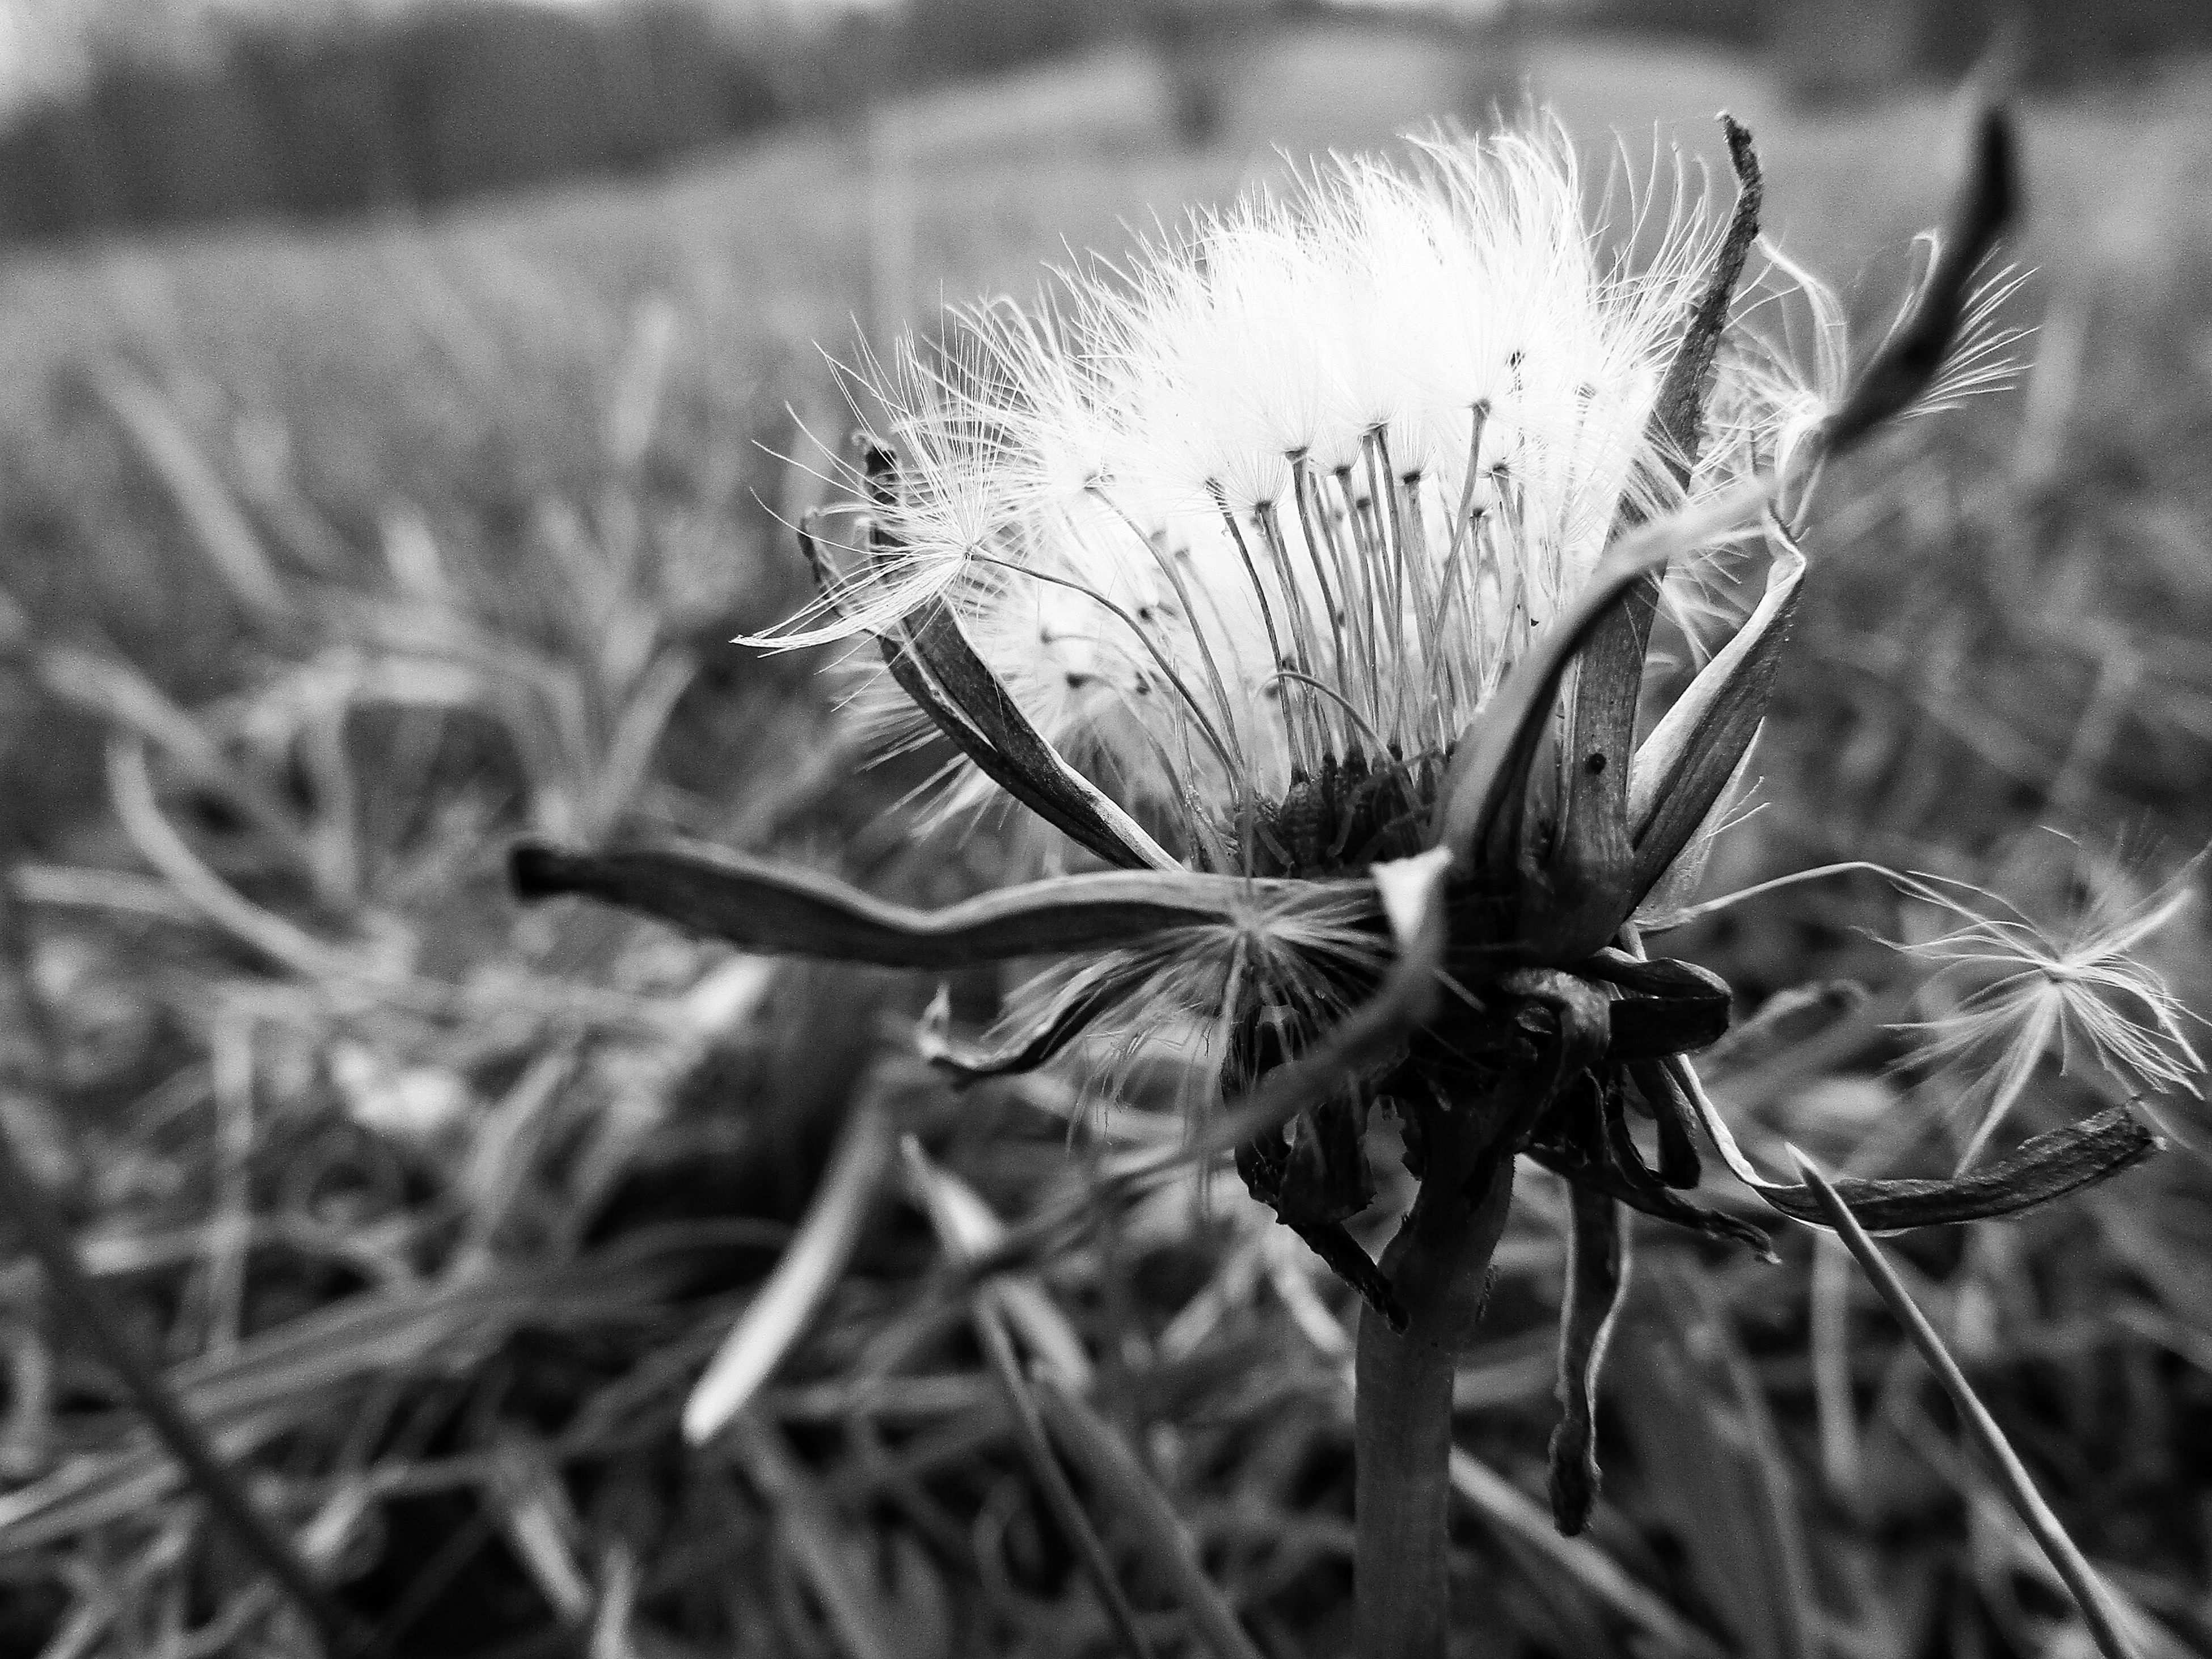 plant, nature, flower, growth, no people, close-up, outdoors, fragility, day, beauty in nature, flower head